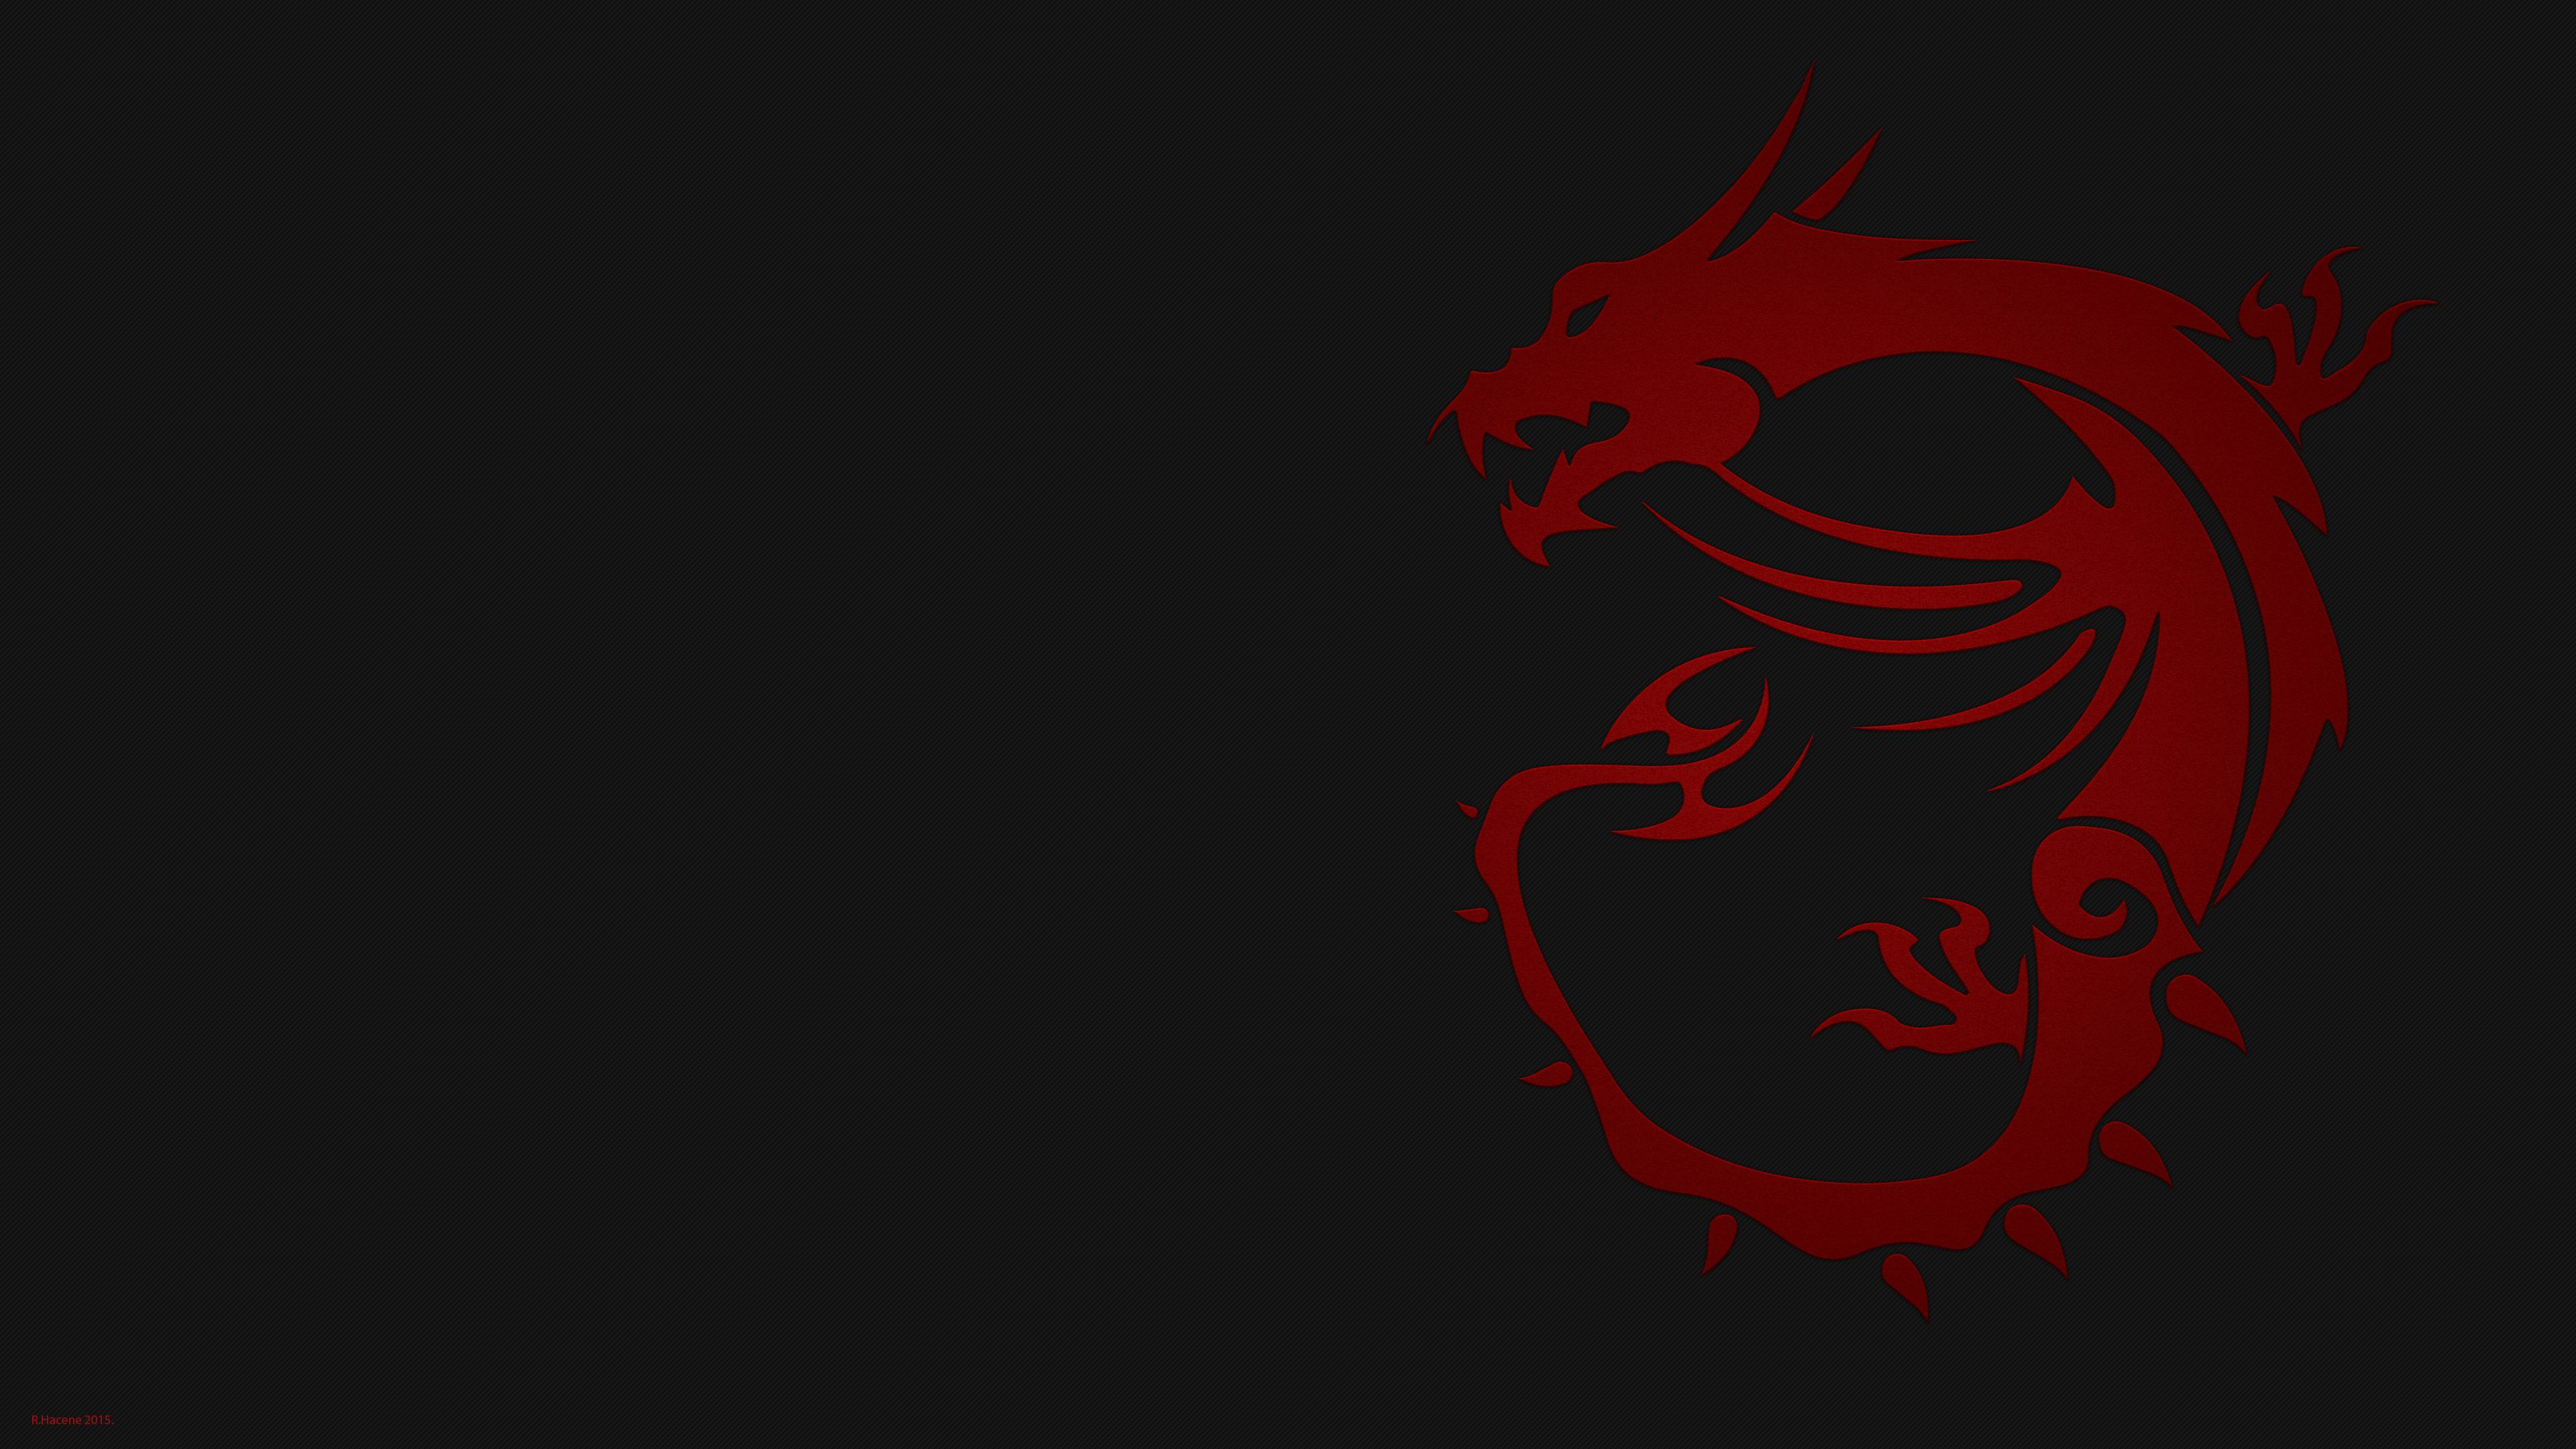 4k Msi Hd Wallpapers Top Free 4k Msi Hd Backgrounds Wallpaperaccess